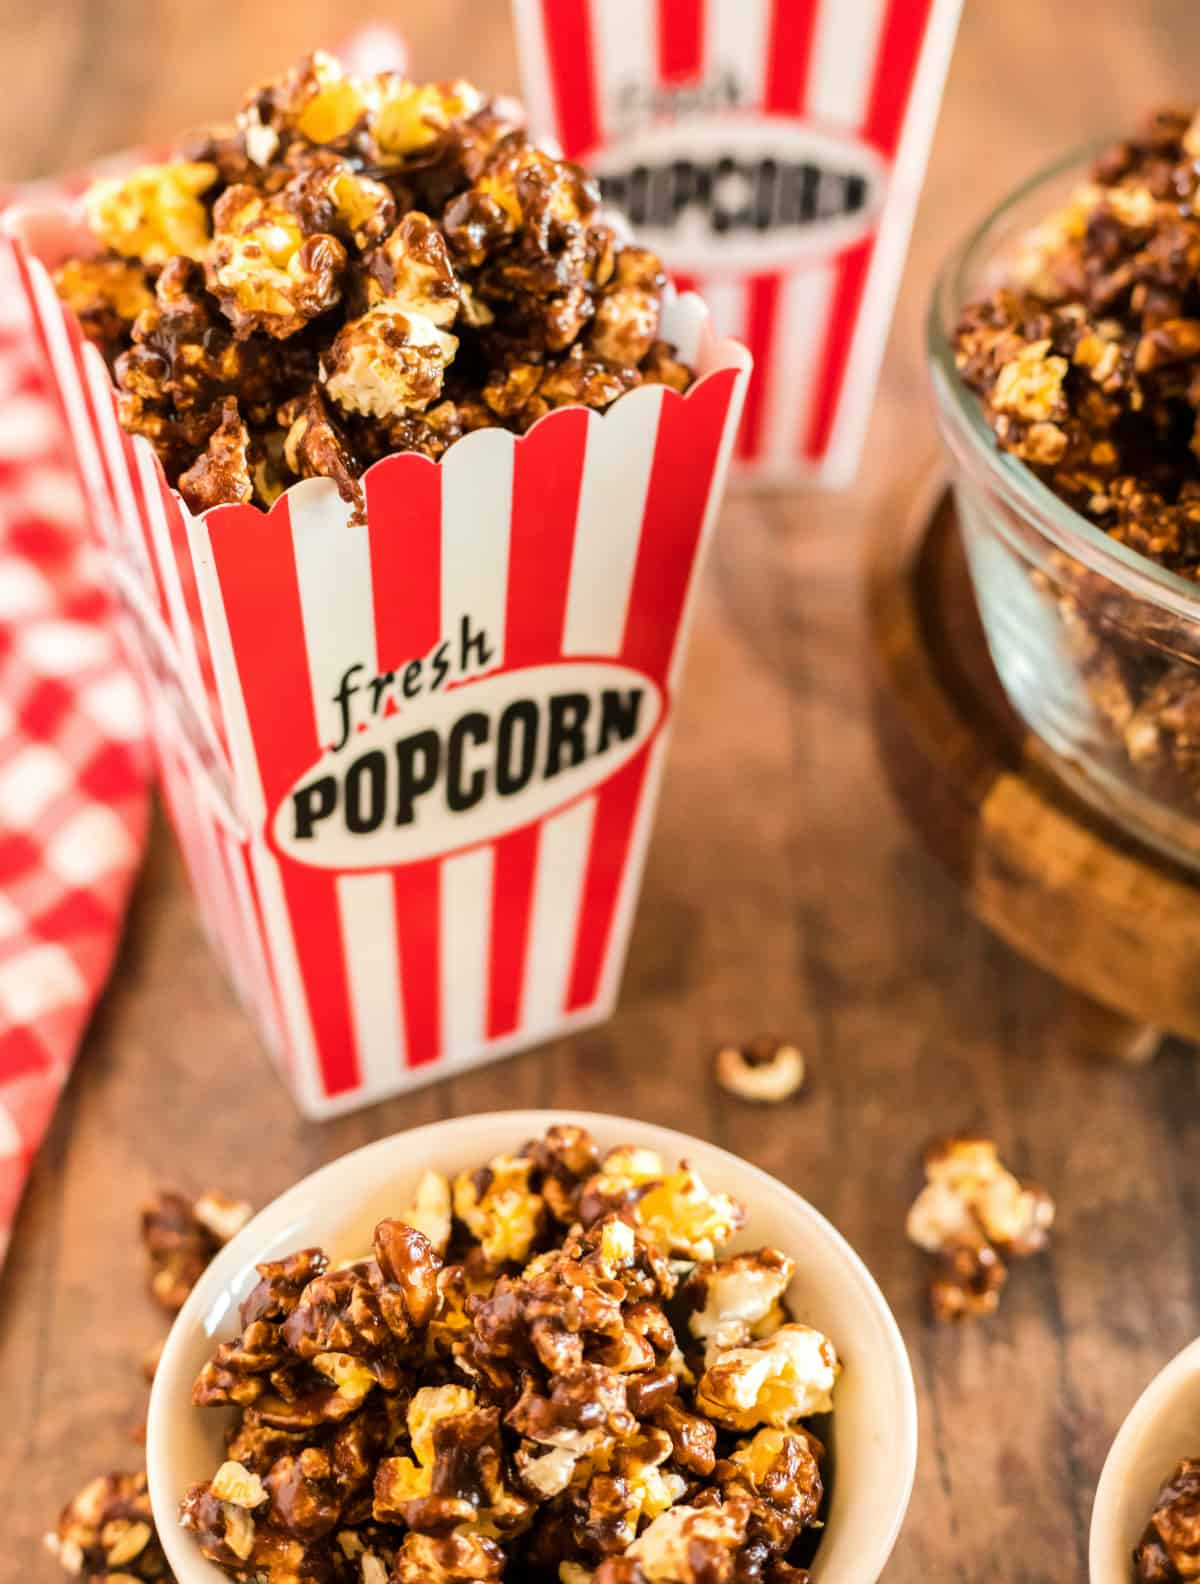 Chocolate popcorn in bowl and popcorn container